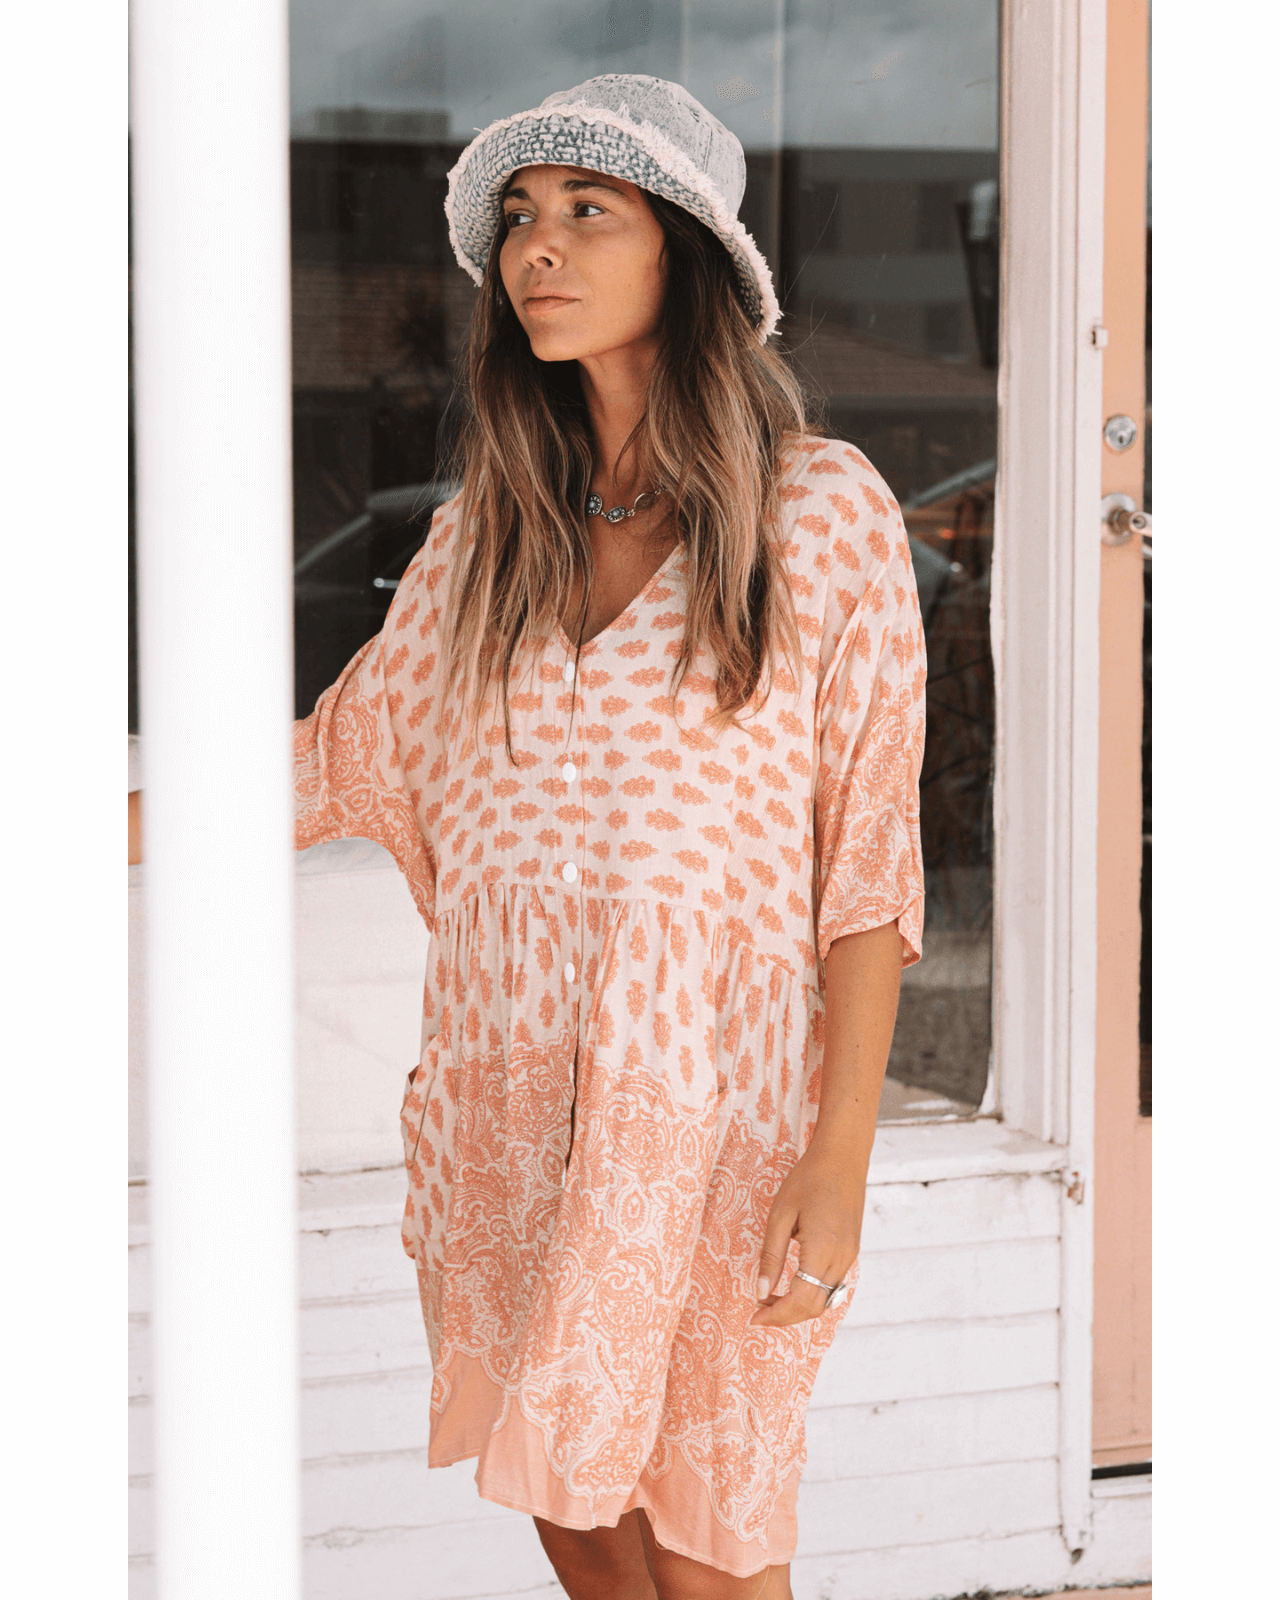 Sundaze Tunic Dress - Peach Sunset